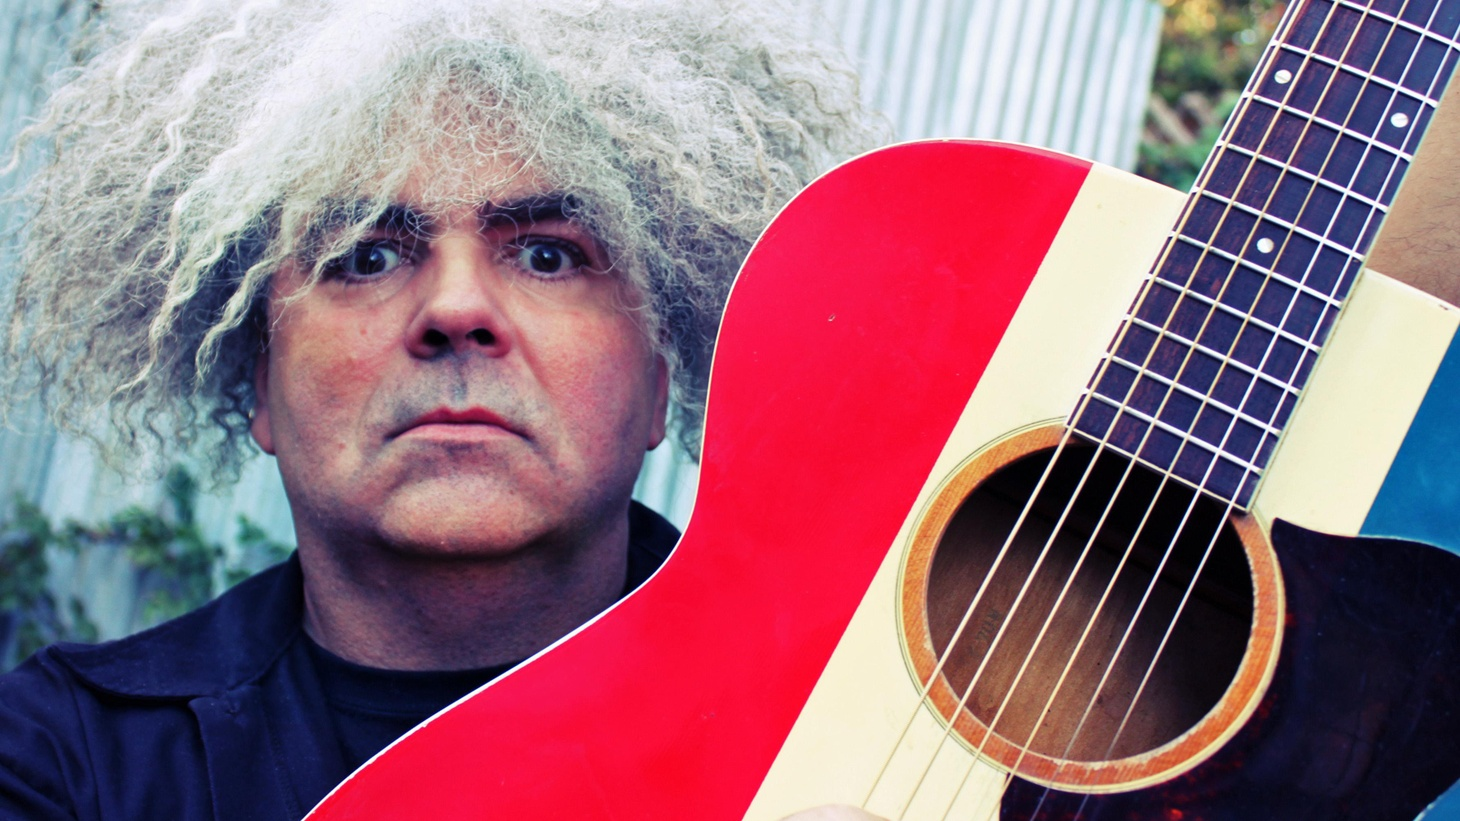 "Roger ""Buzz"" Osborne, frontman for the legendary band The Melvins, will be stopping by the studio for a Guest DJ set. He'll be picking the tunes for the entire show."